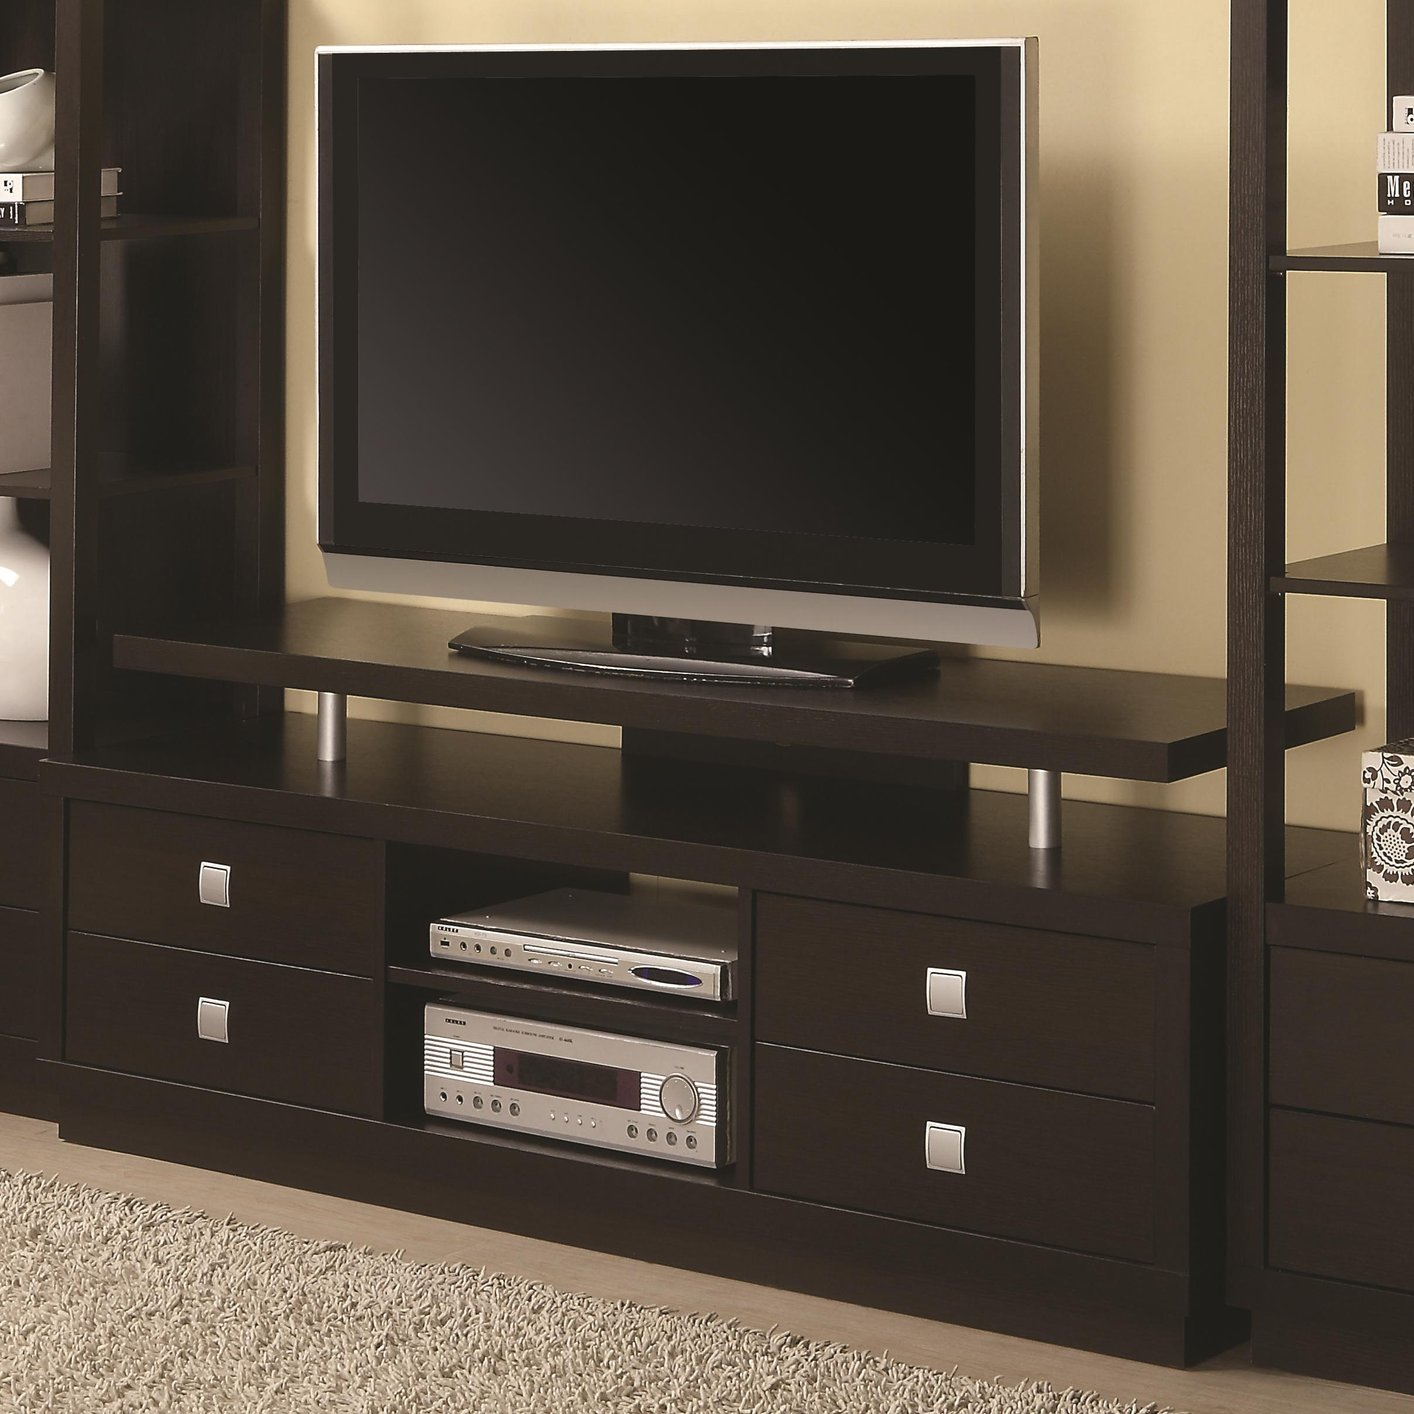 Brown Wood TV Stand - Steal-A-Sofa Furniture Outlet Los Angeles CA